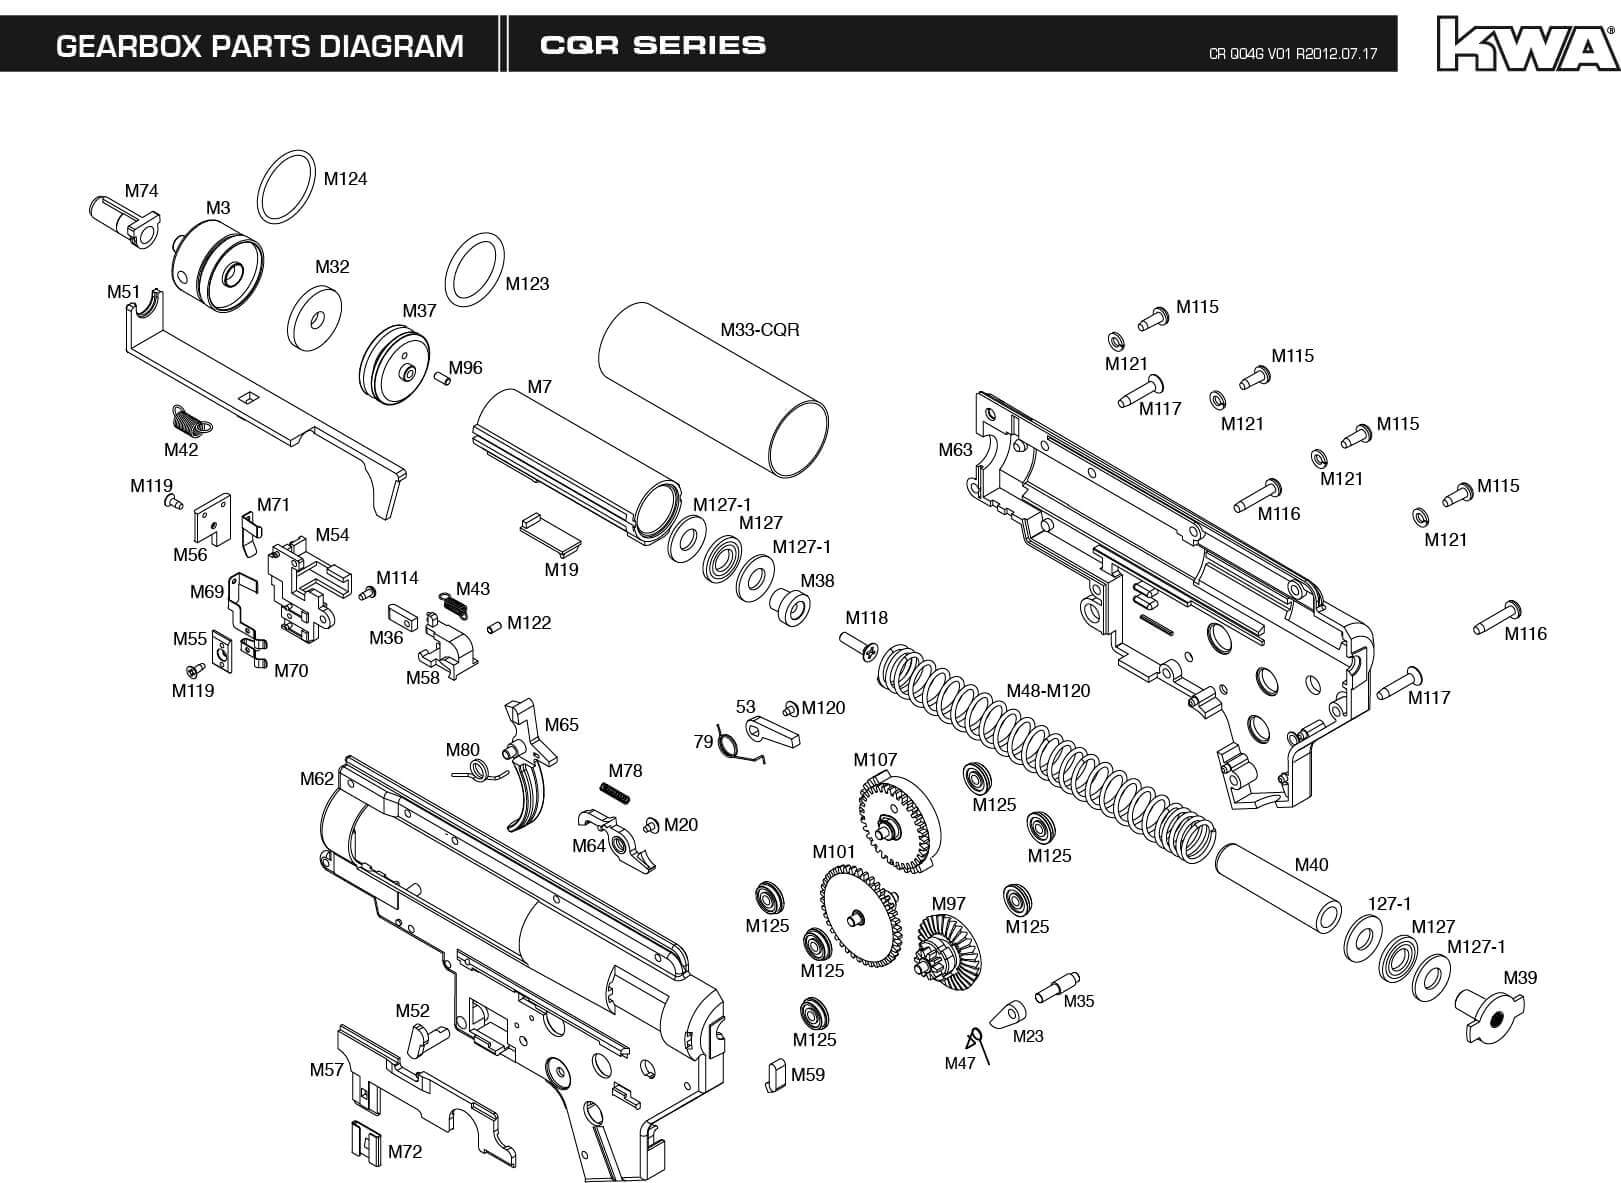 Downloads Kwa Airsoft 22 Rifle Parts Diagram Engine Car And Component Cqr Mechbox